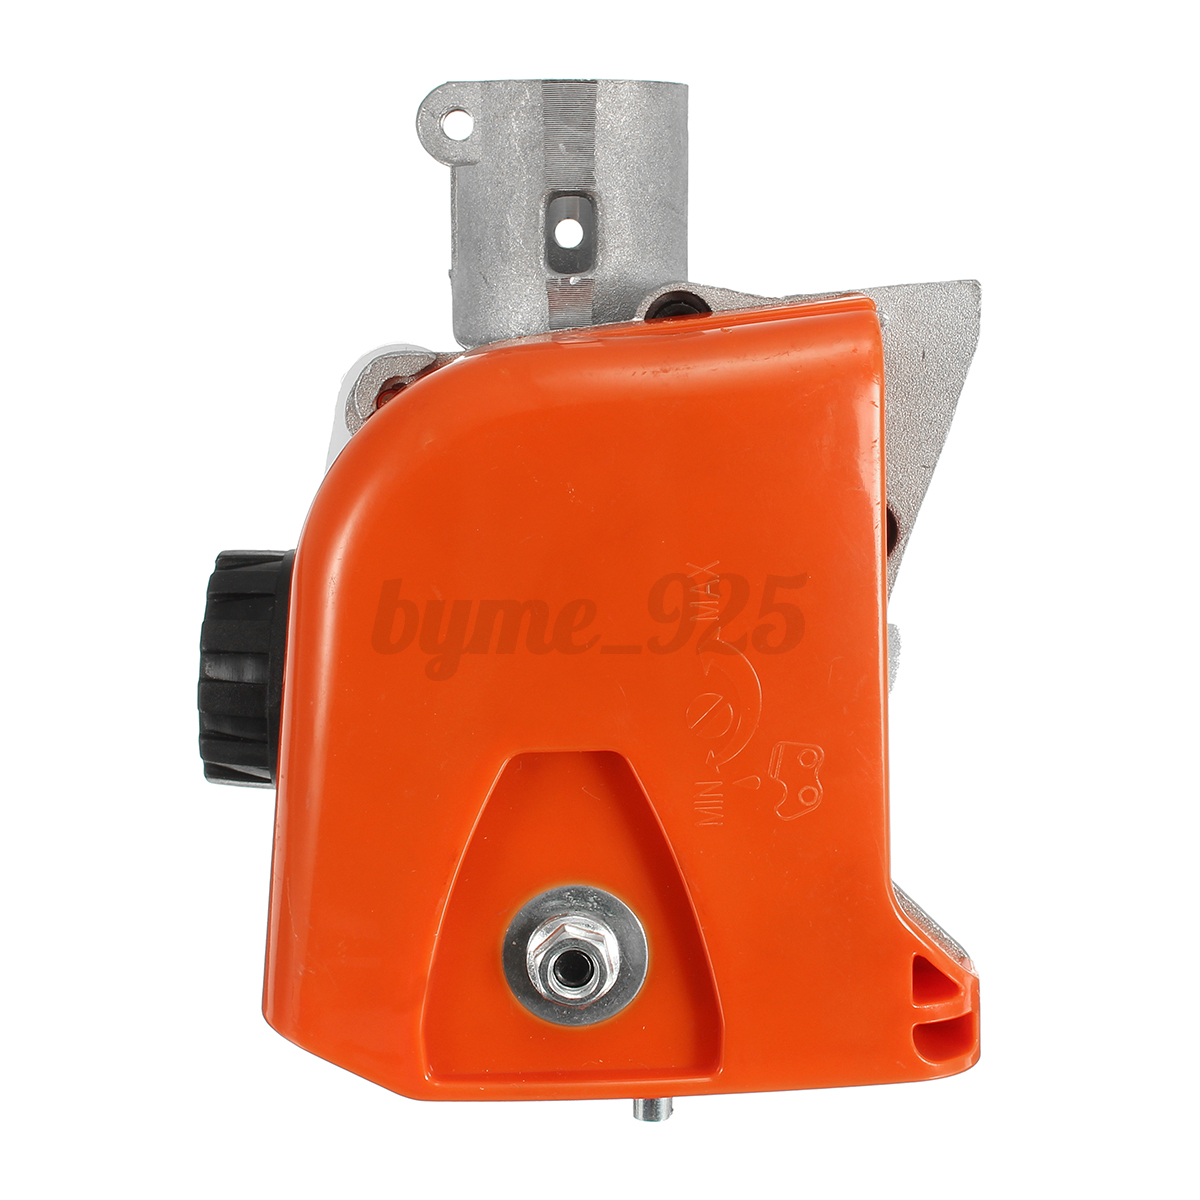 Pole saw Chainsaw Tool Gearbox Gear head Assembly 26 mm 9 spline For sithl